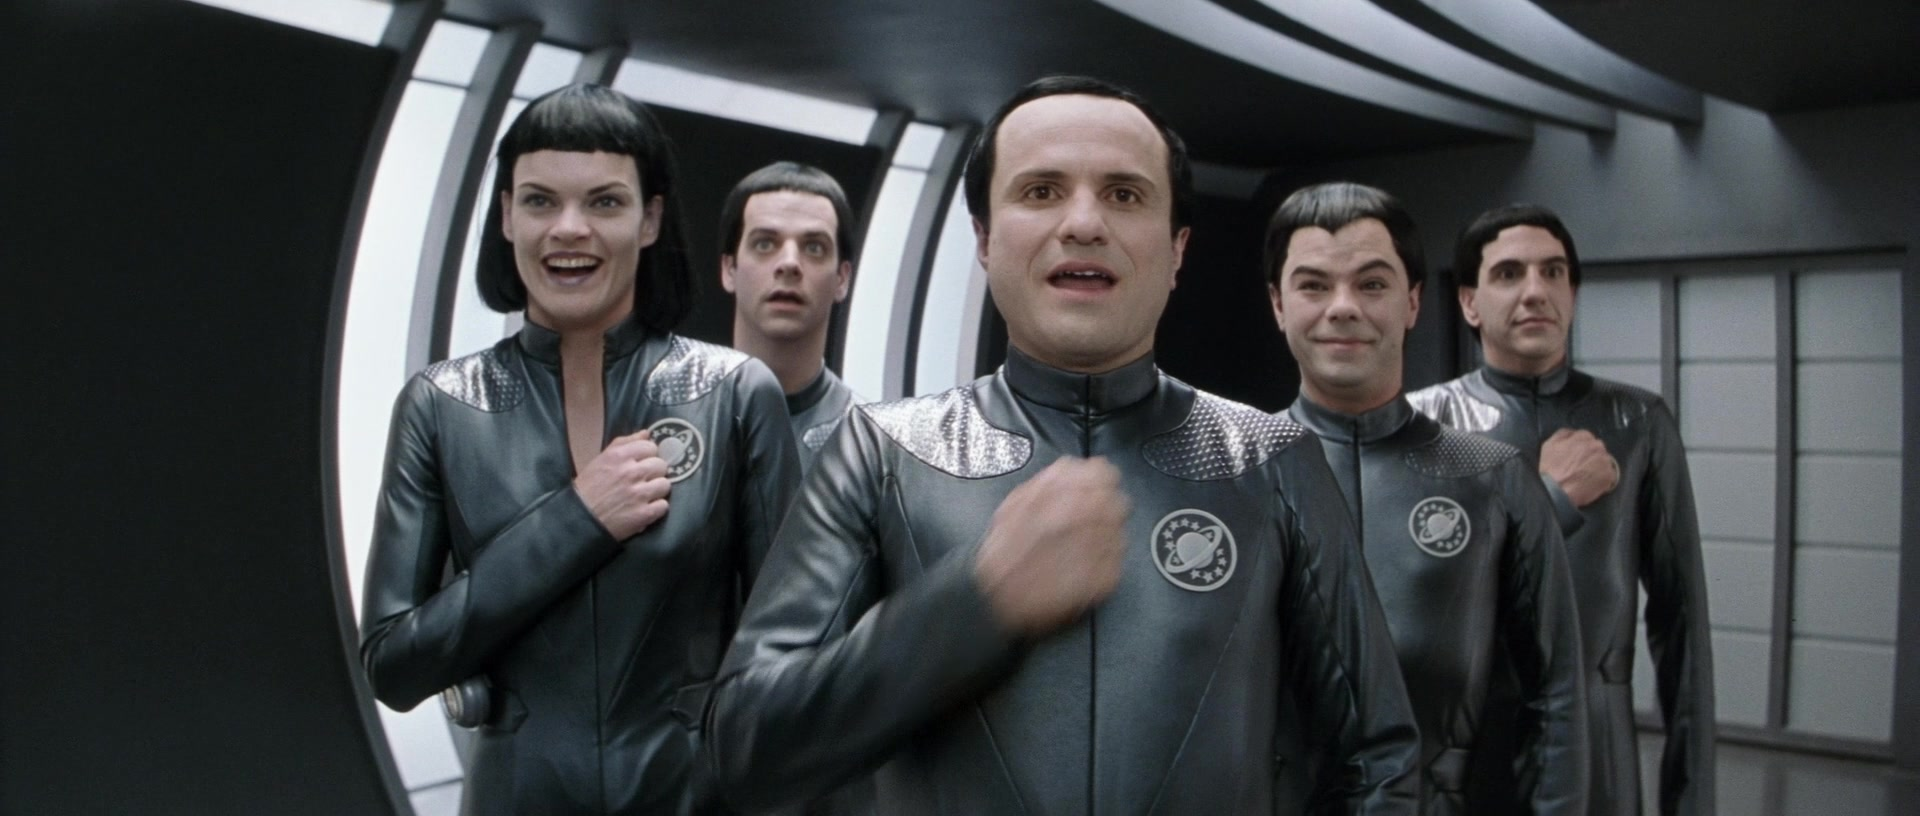 Galaxy_Quest_1999_Screenshot_0771.jpg